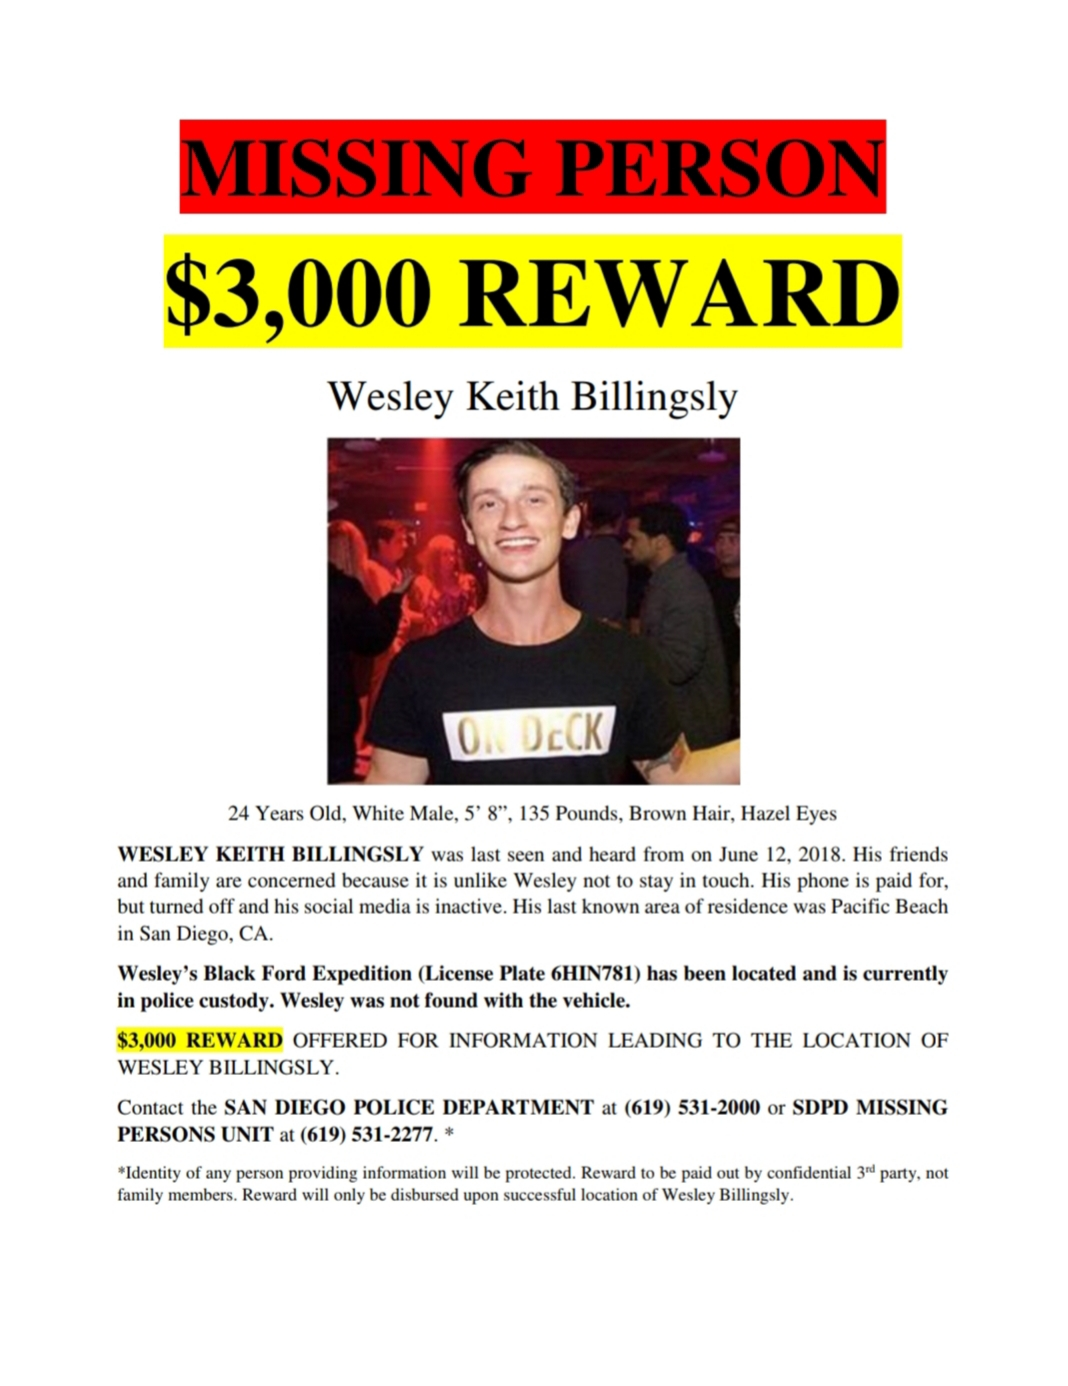 SDSU alumnus Wesley Billingsly remains missing after disappearing in June from the Pacific Beach area.